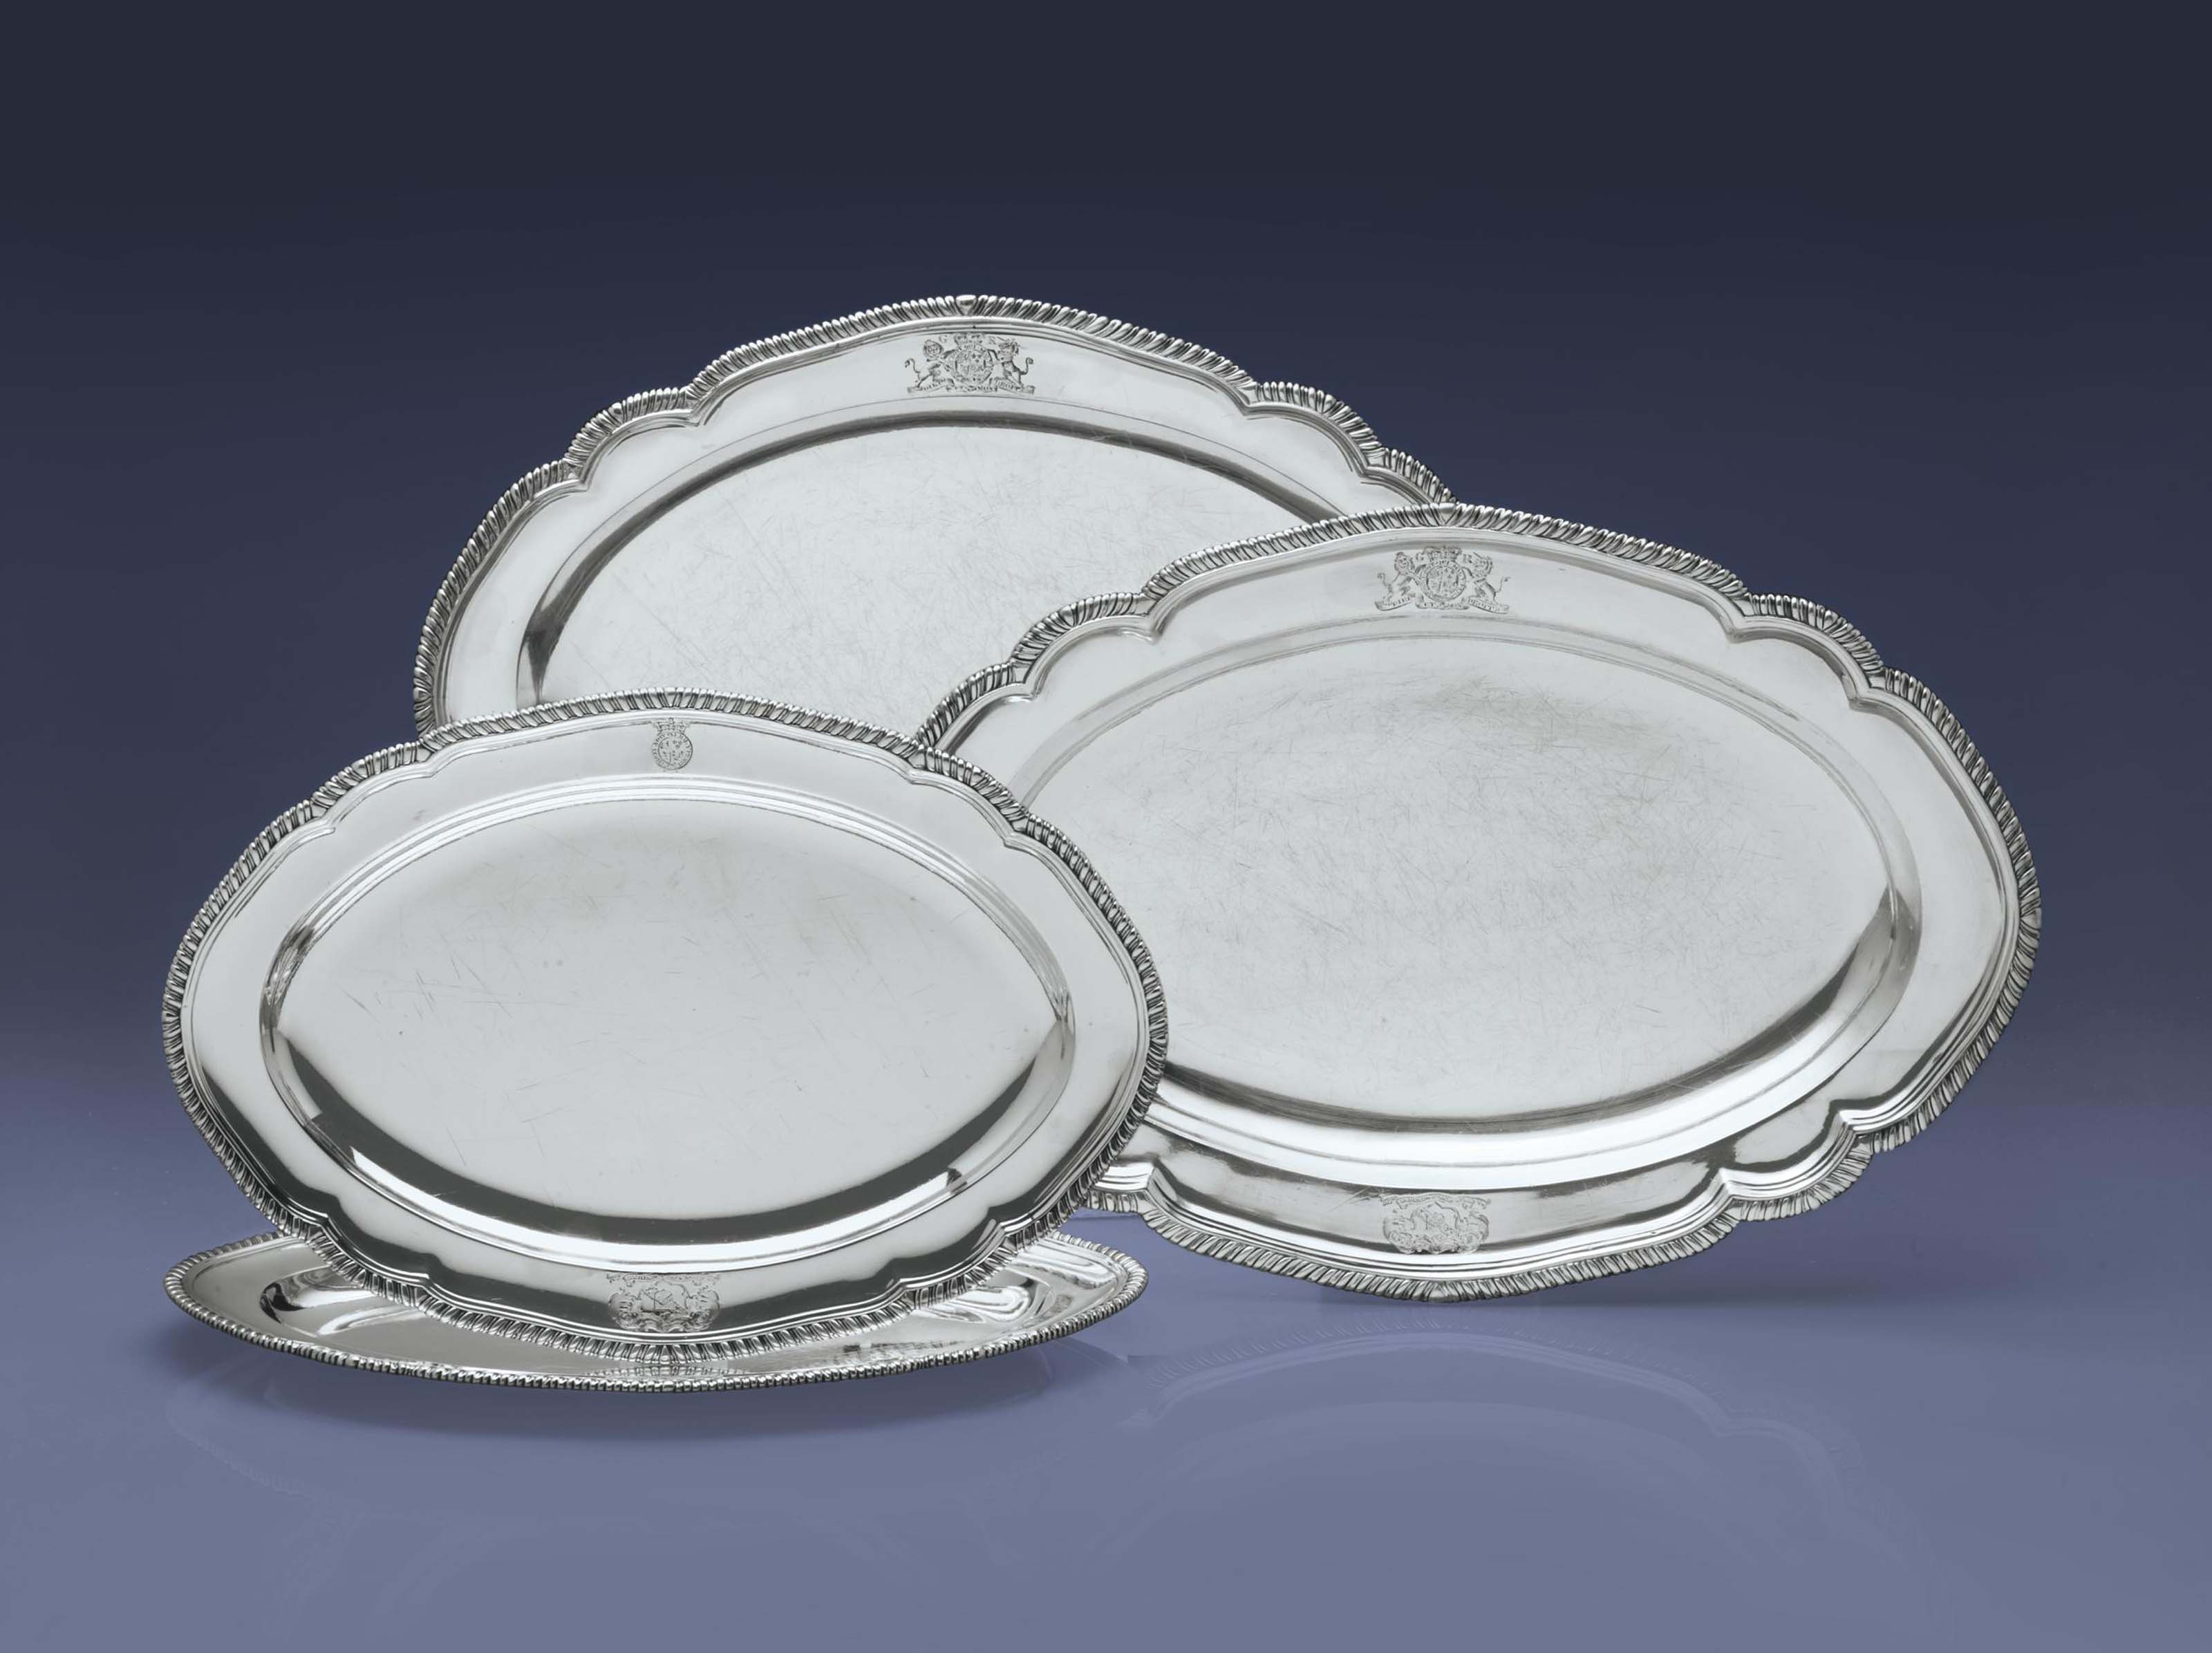 TWO PAIRS OF GEORGE III SILVER MEAT DISHES